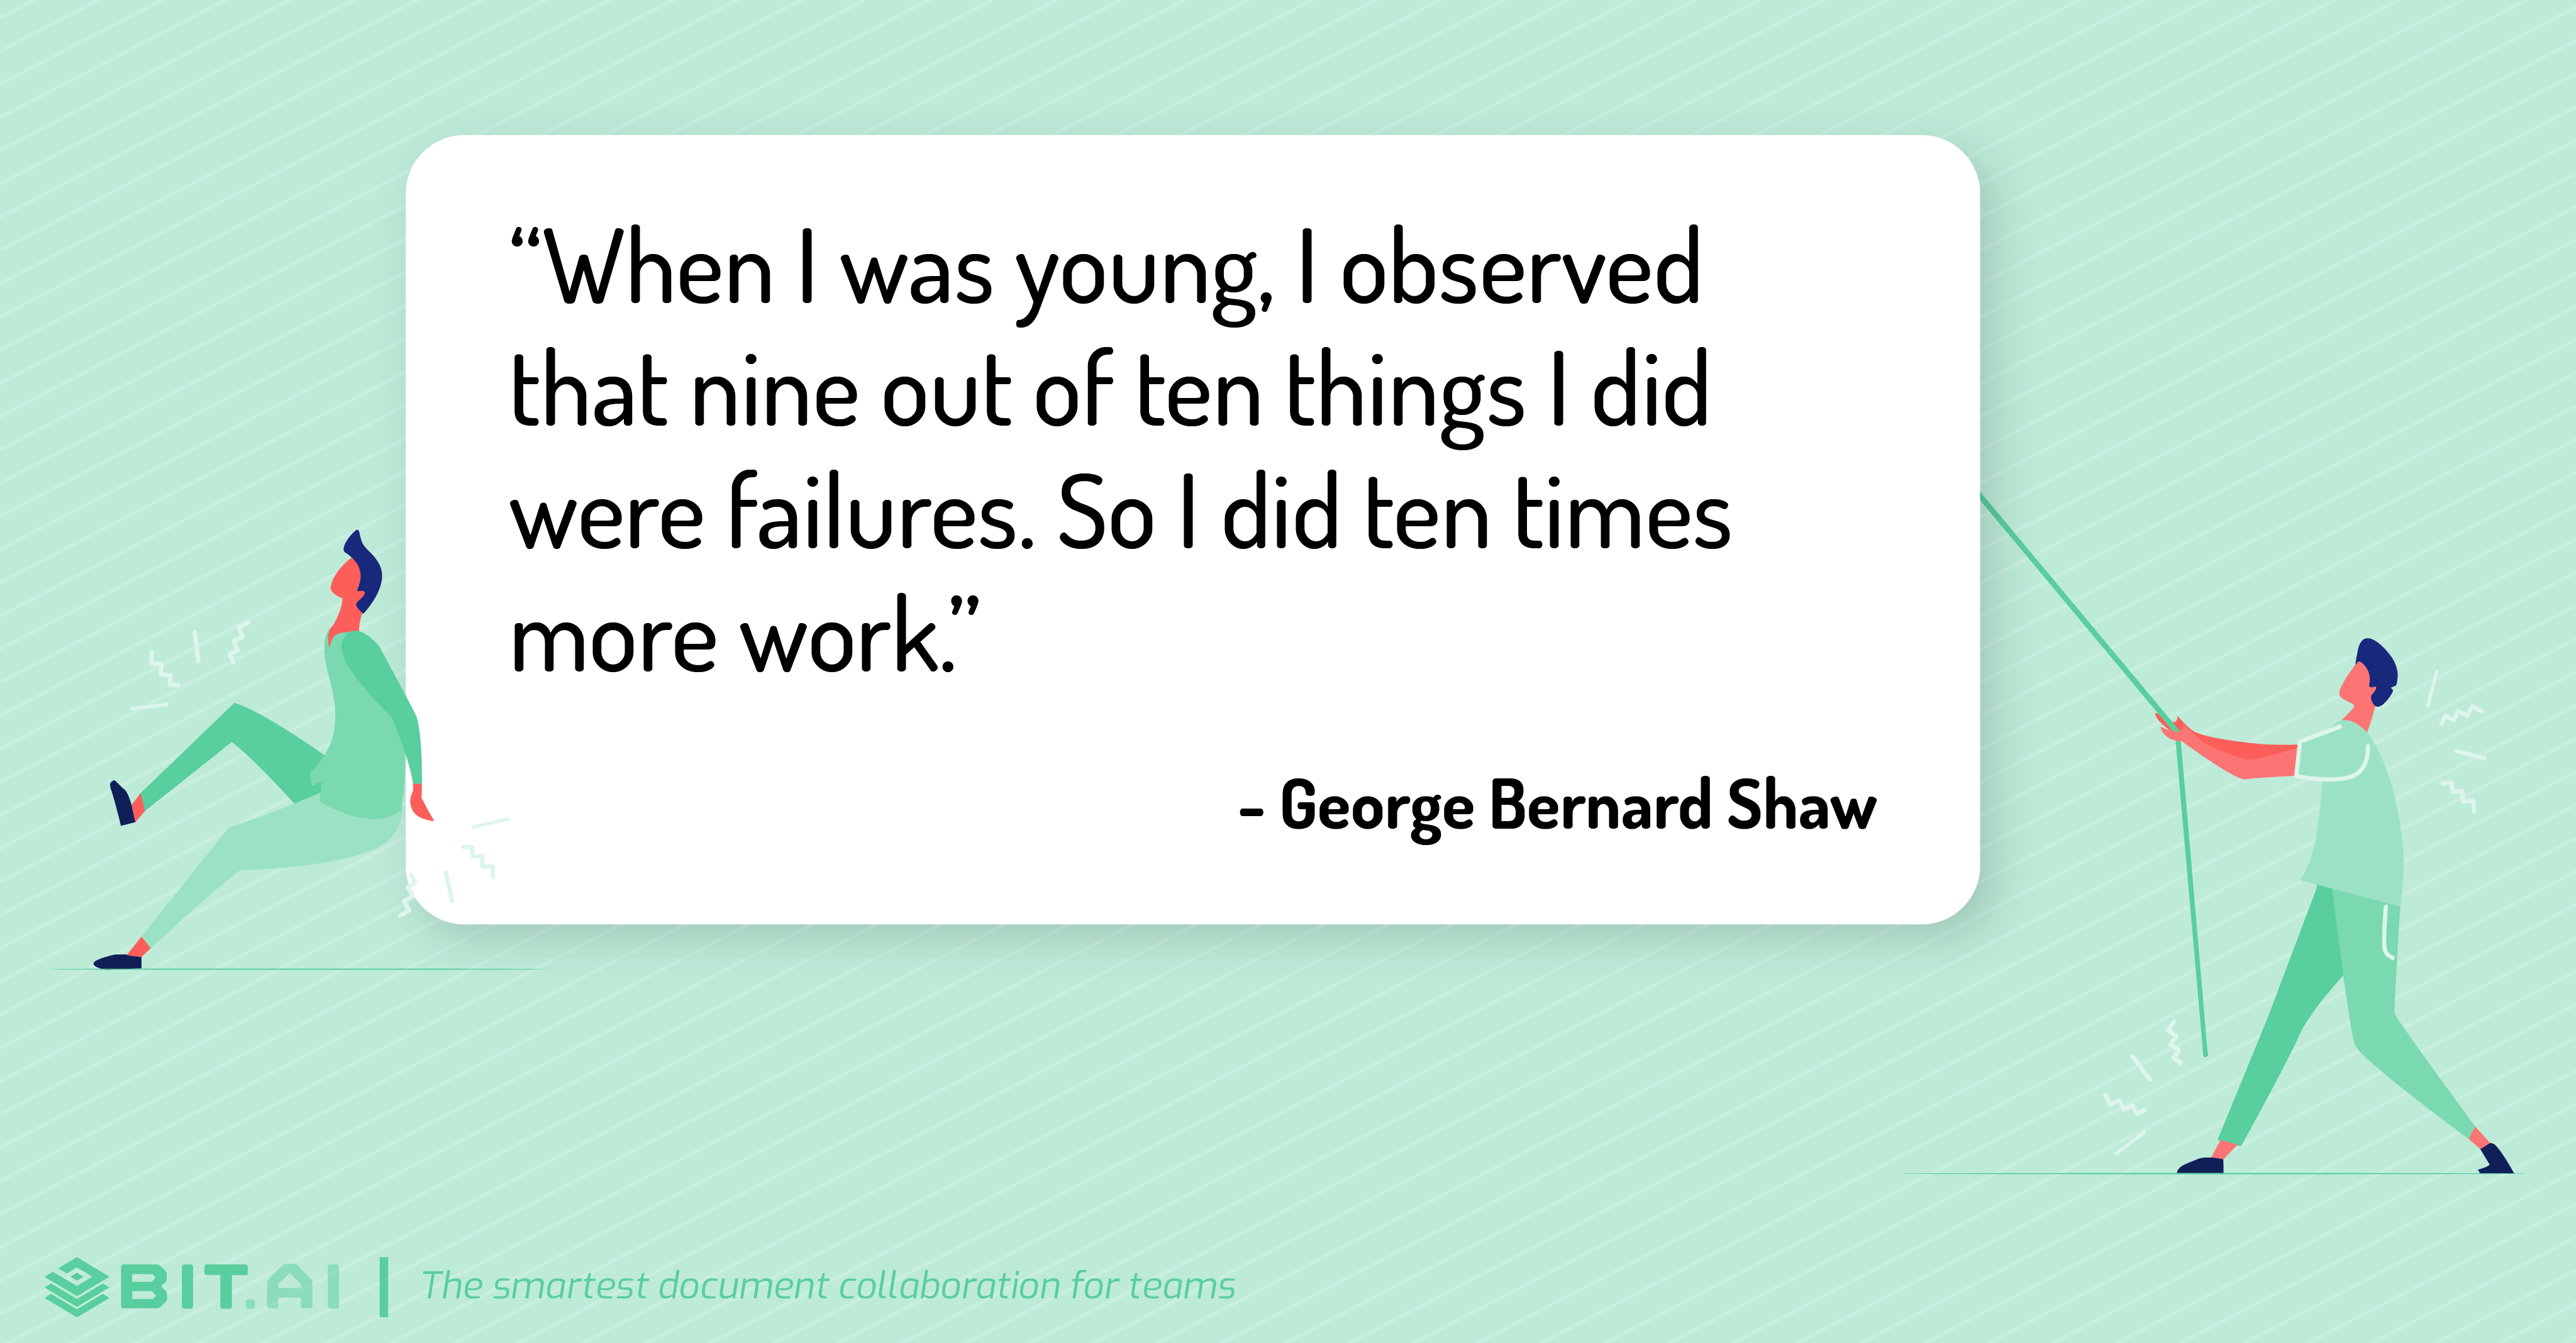 Hard work quote by George Bernard Shaw